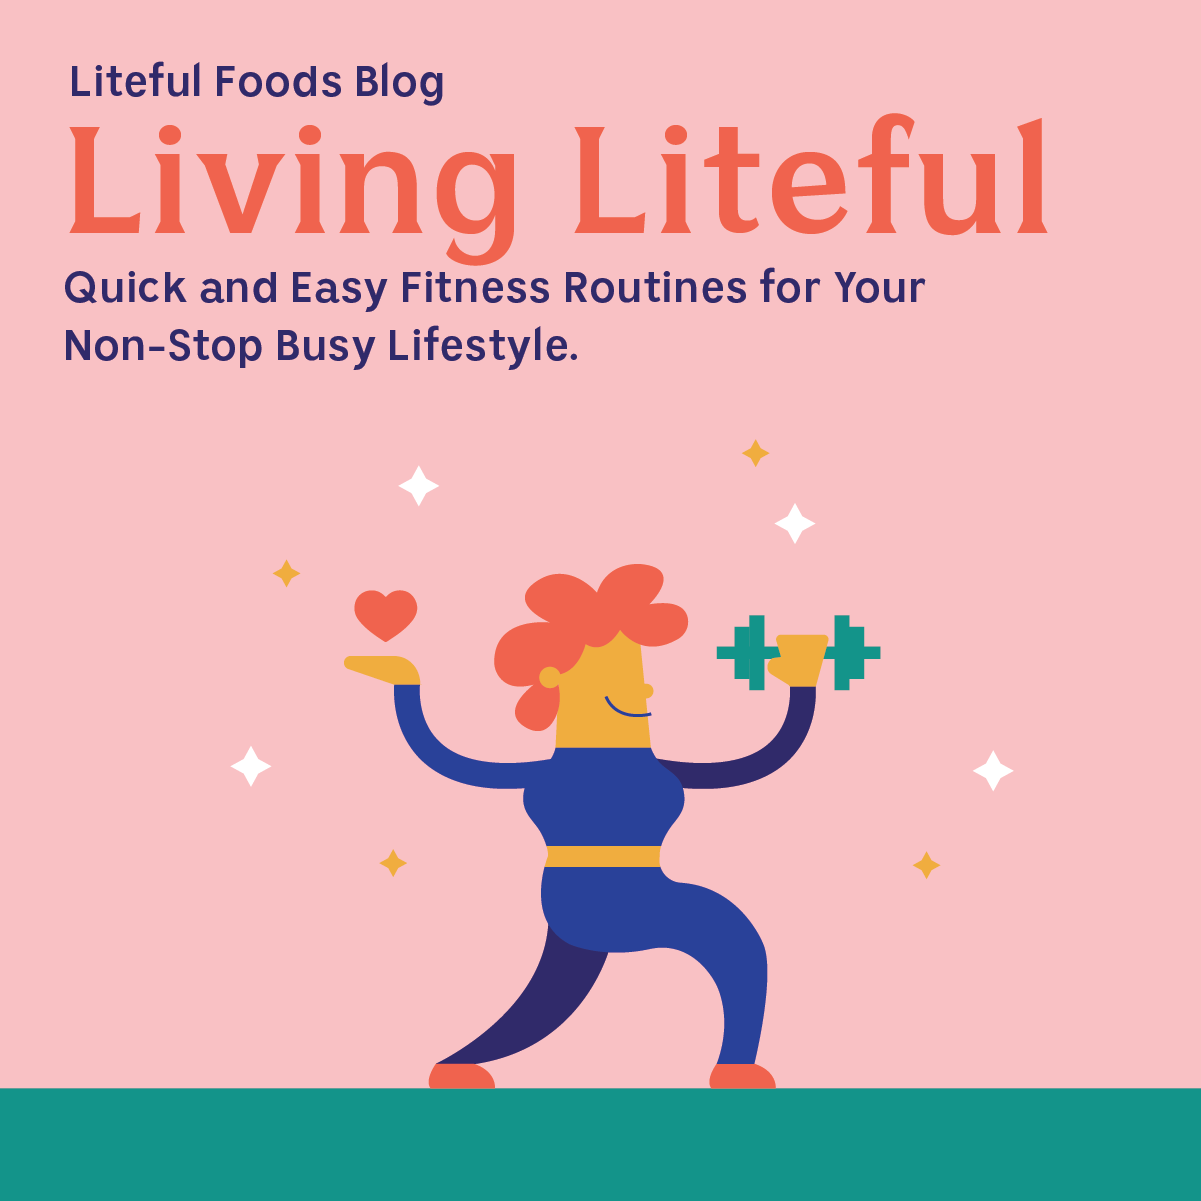 Quick and easy workout routine for your nonstop busy lifestyle. - - #LitefulFoods #Liteful #Litefull...